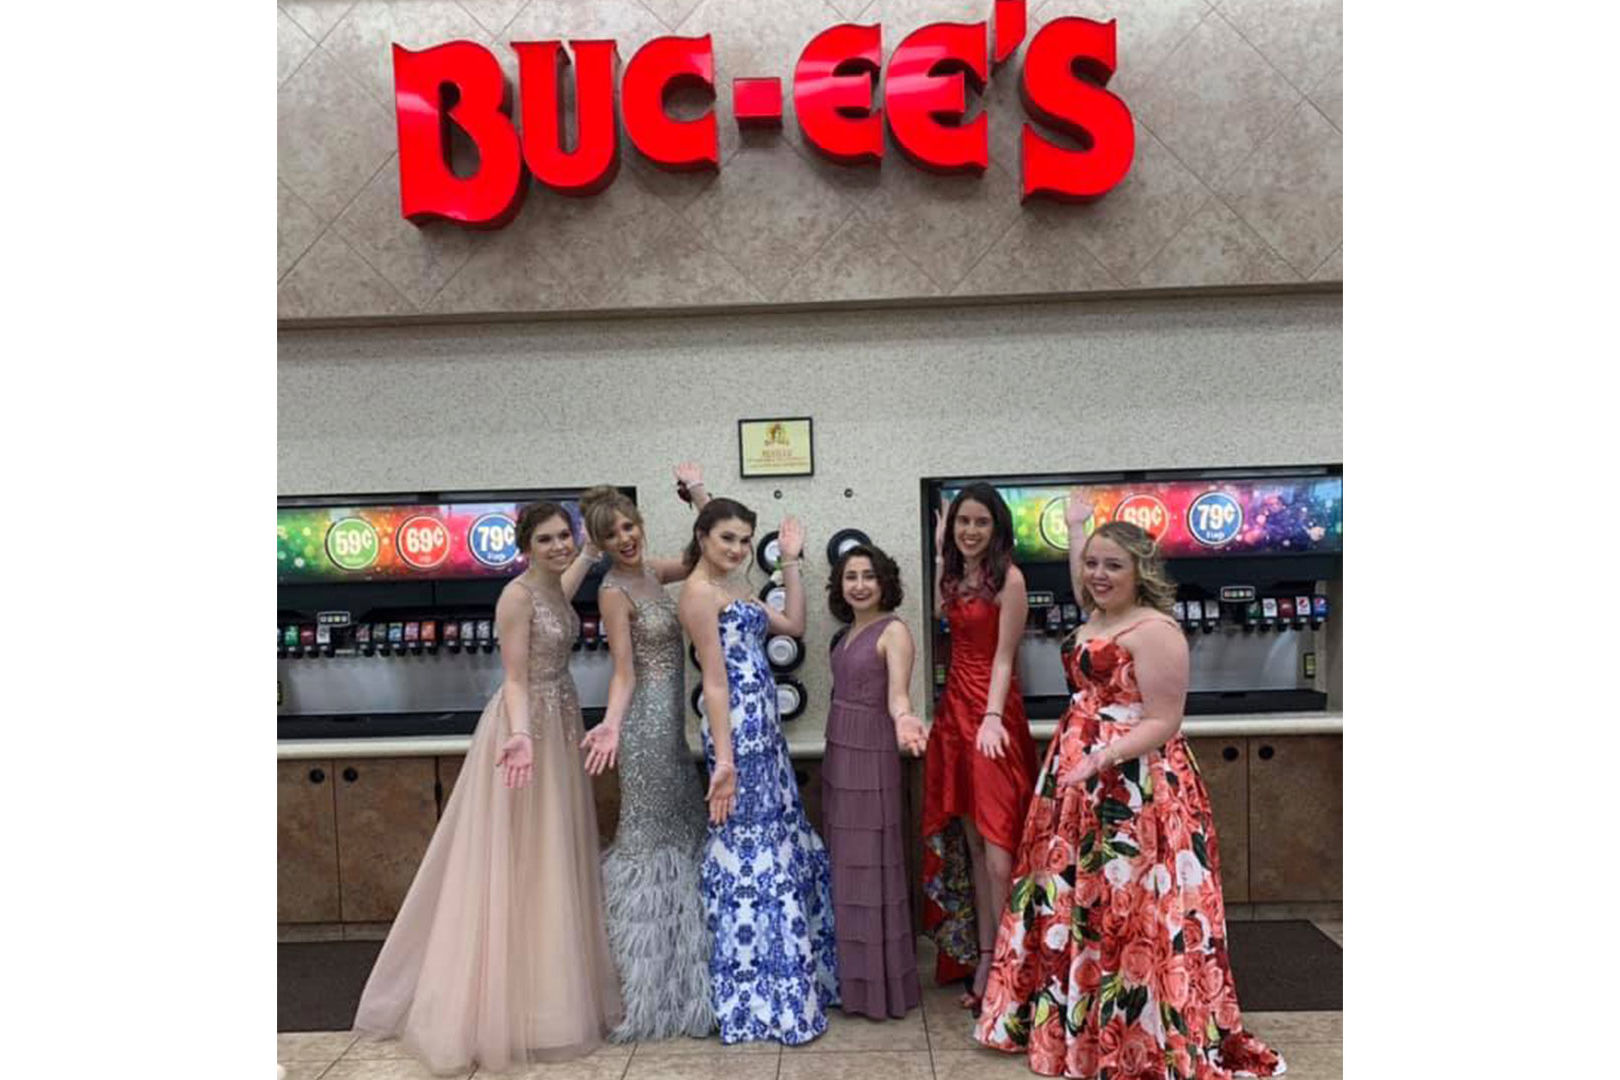 Texas Teens Pose for Prom Photos at Buc-ee's